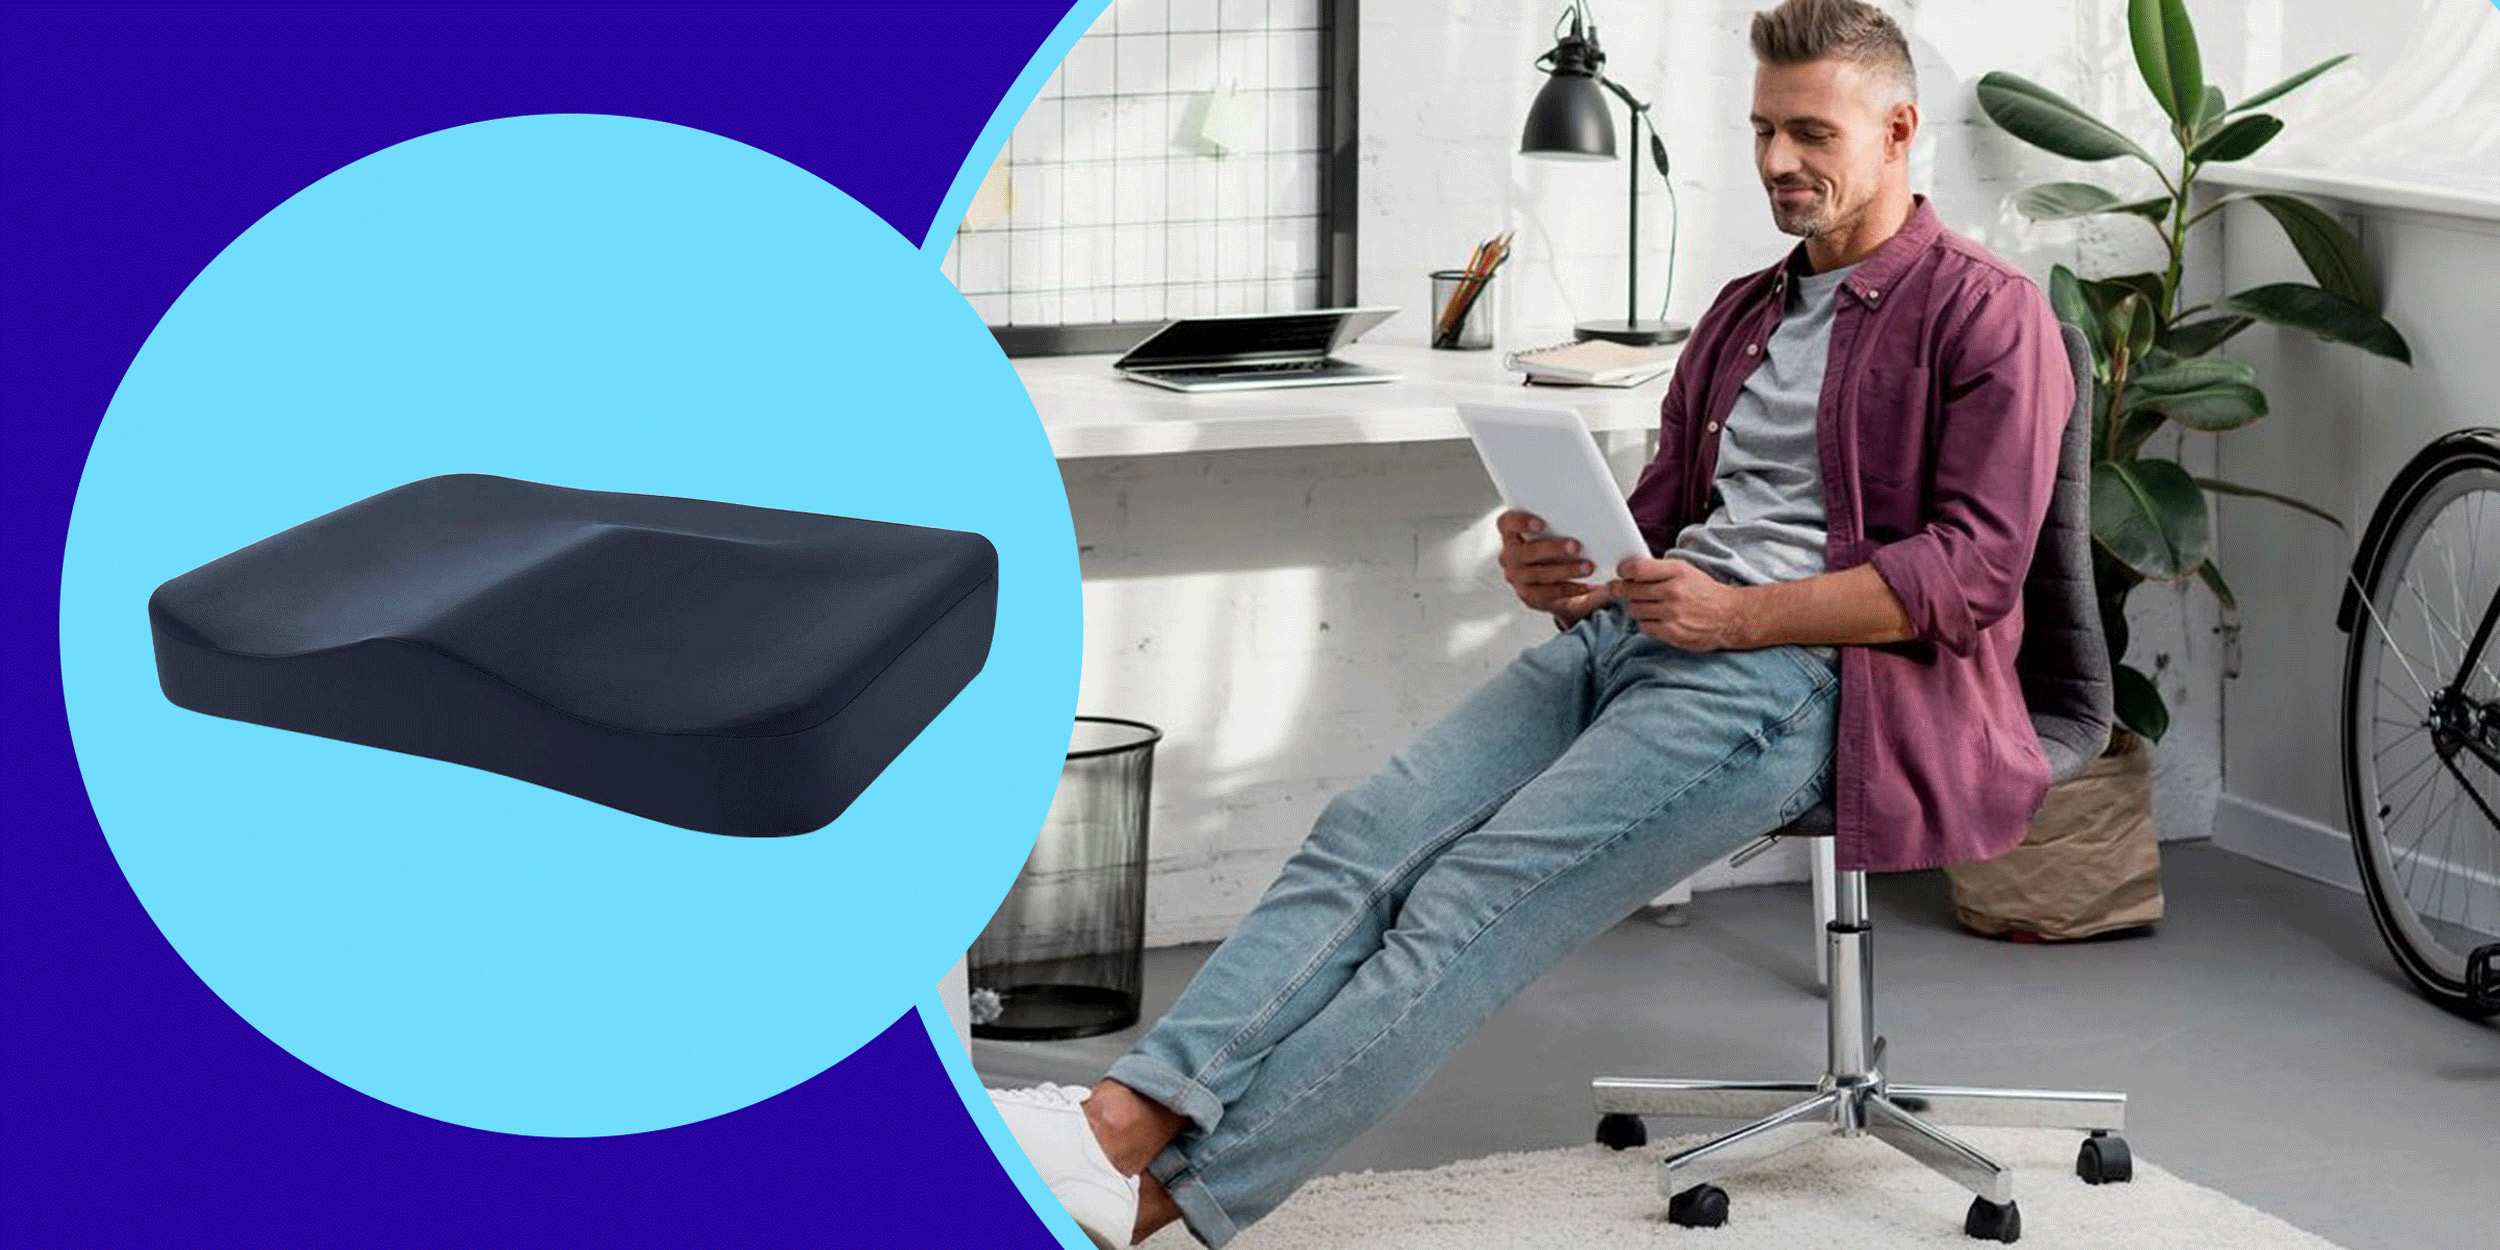 10 Supportive Seat Cushions In 2021 For, Memory Foam Chair Pads Australia